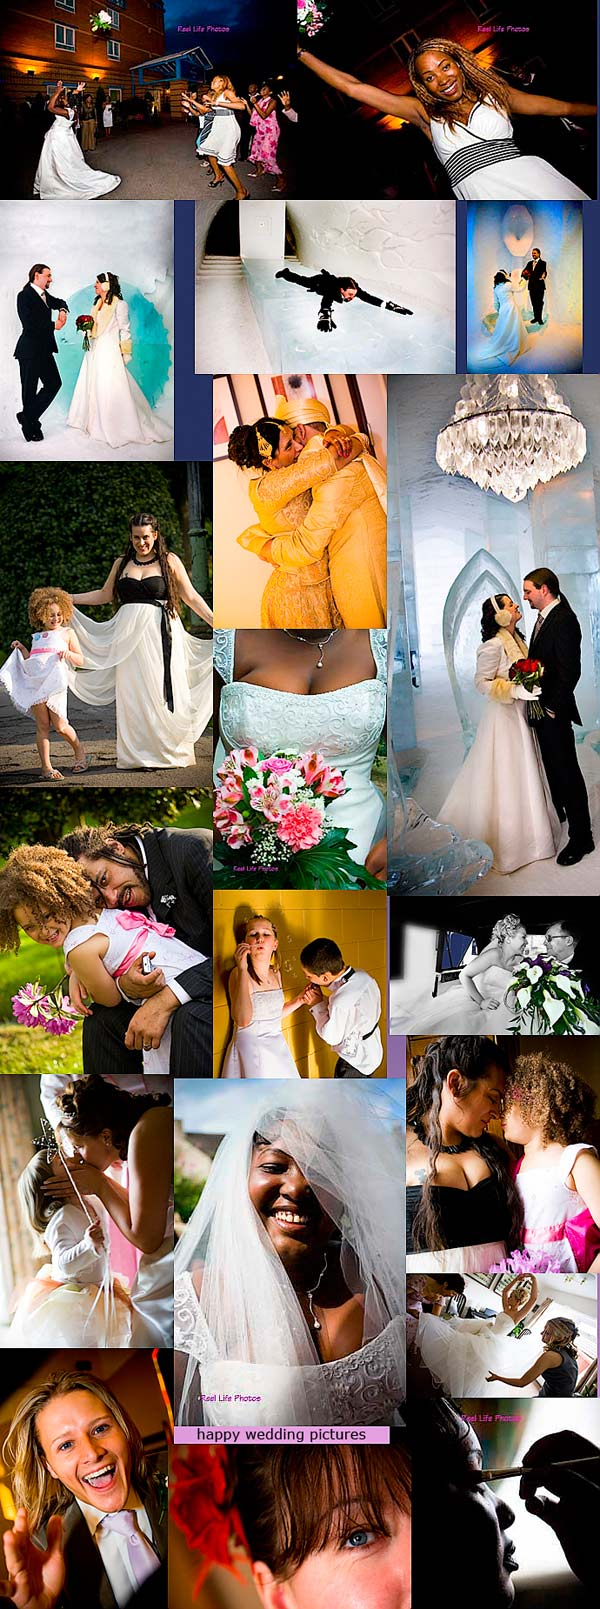 collage of wedding pictures by Reel Life Photos wedding photographers UK